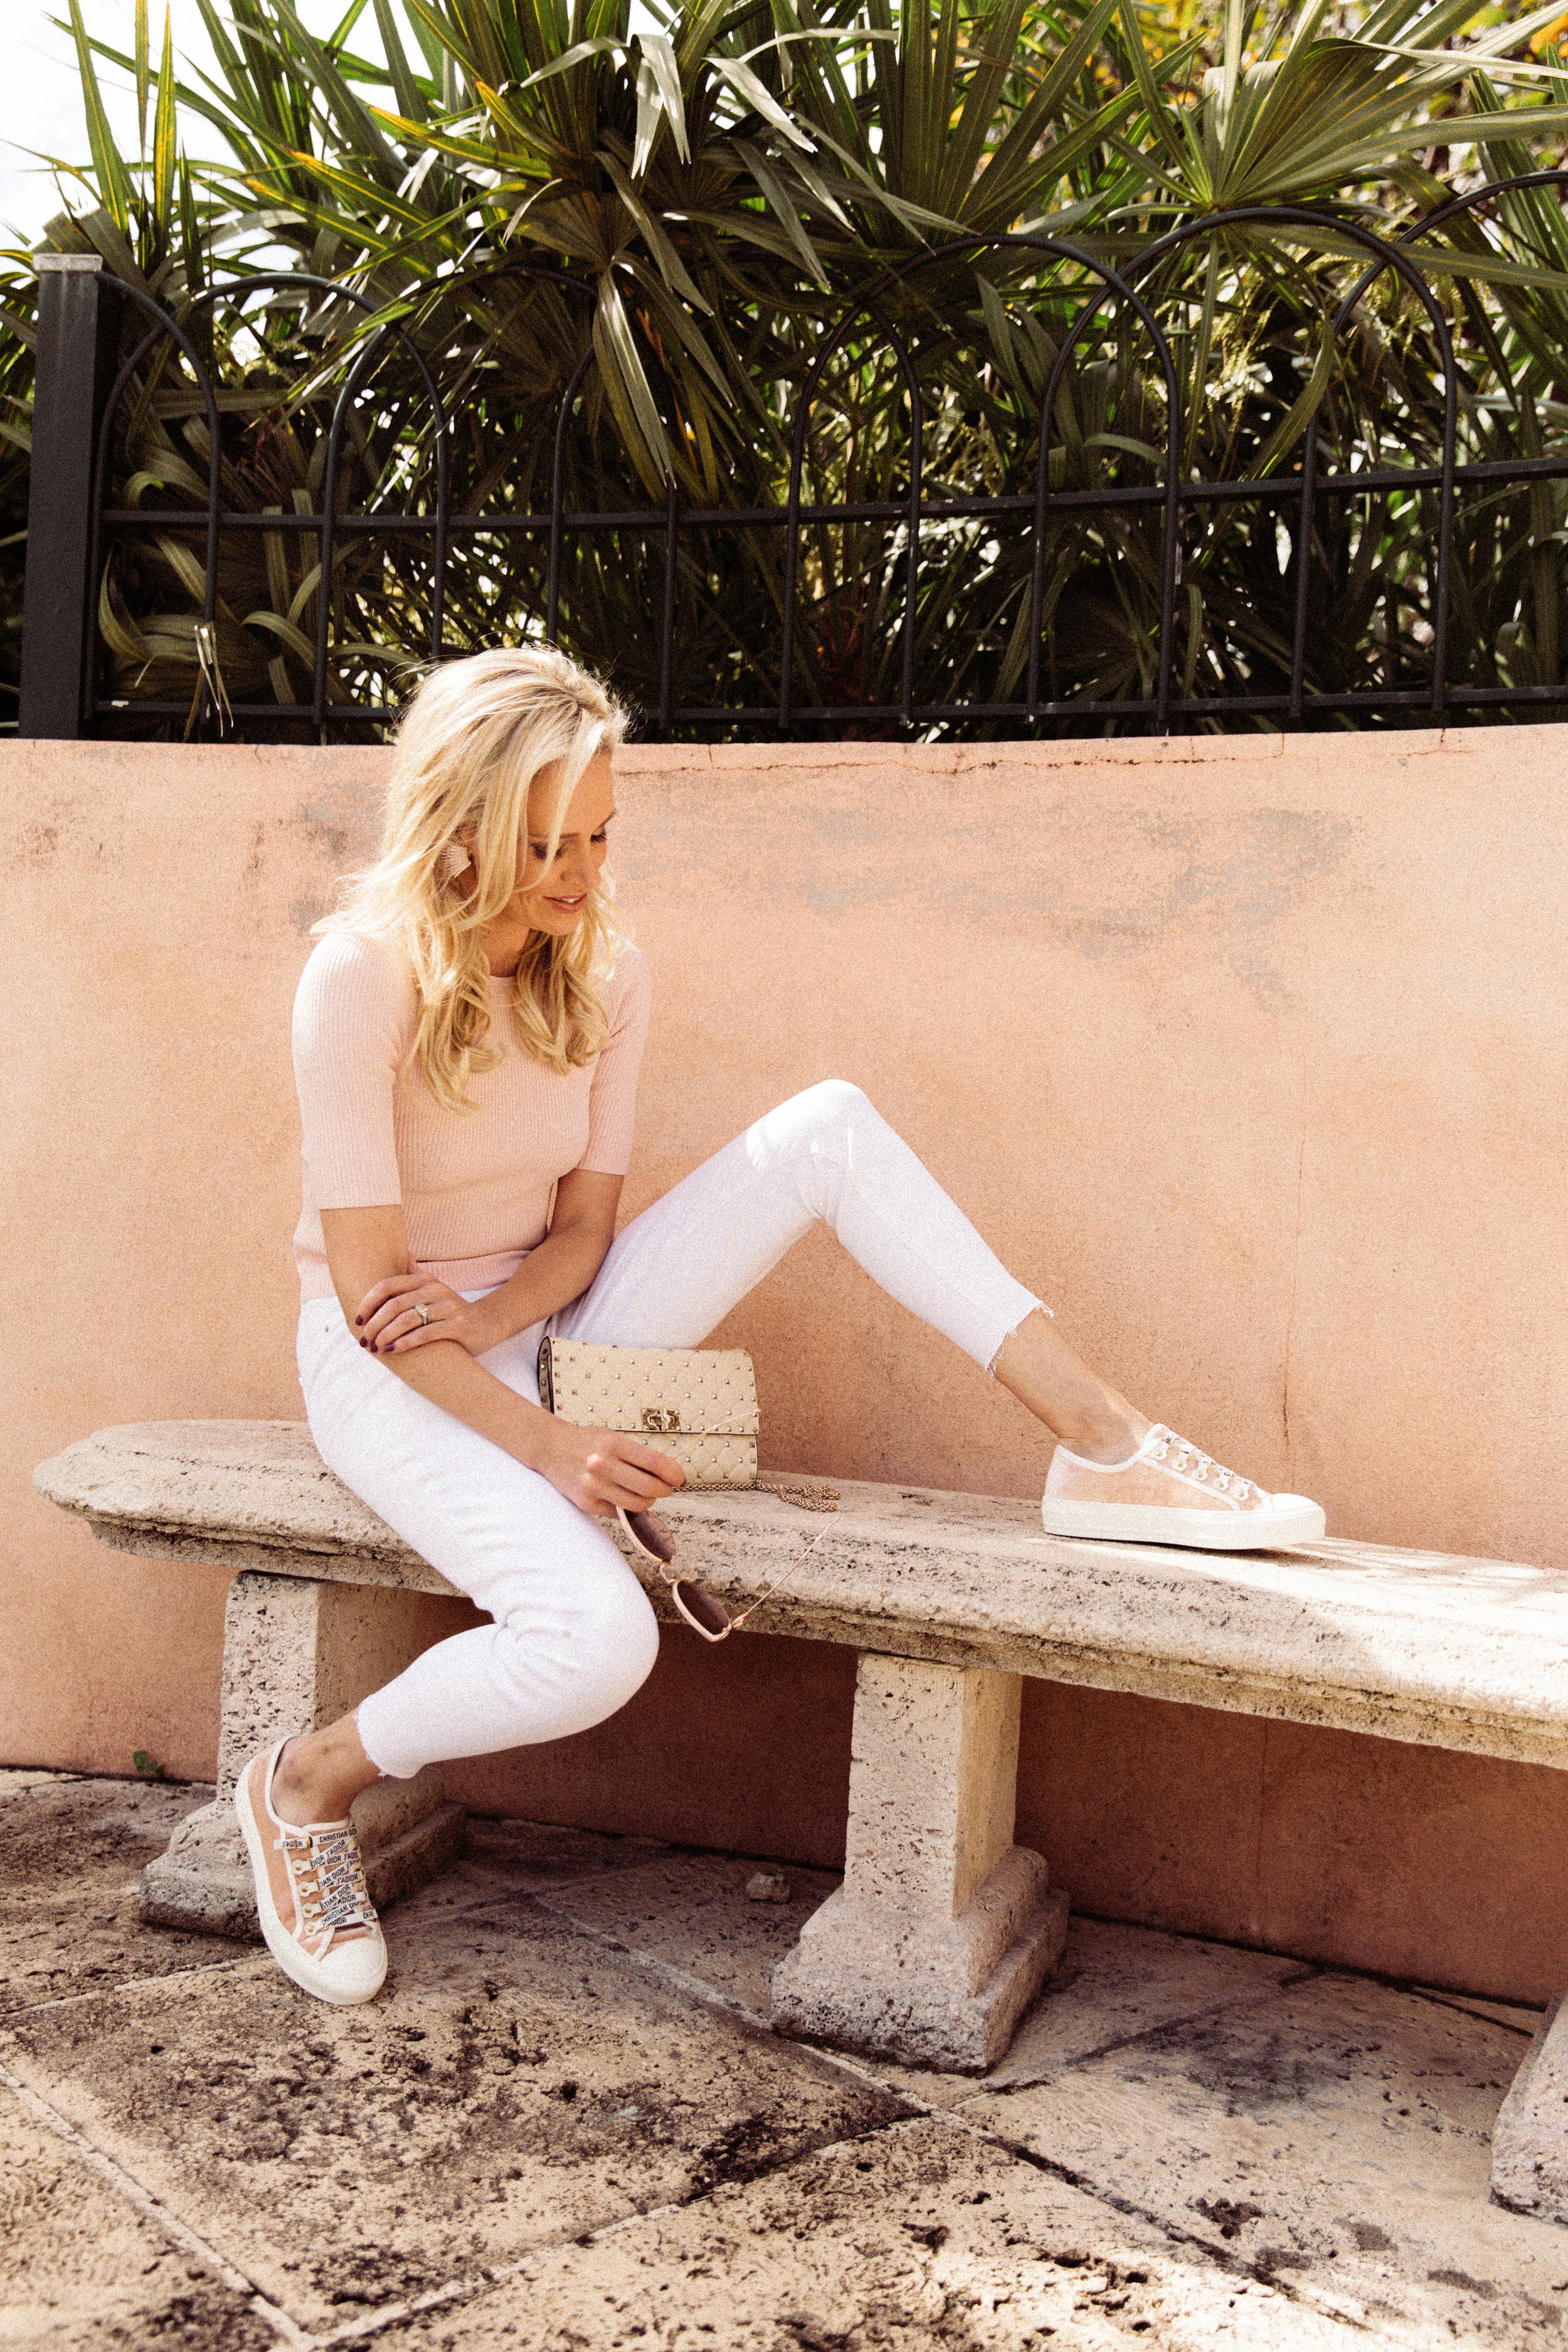 I strive for edgy, chic, and a tad bit of bold. So, when the expected pastel trend pops up every spring, I get a little … what's the word … uneasy. Investing in pastels for my wardrobe feels like cheating on my go-to, style staples.